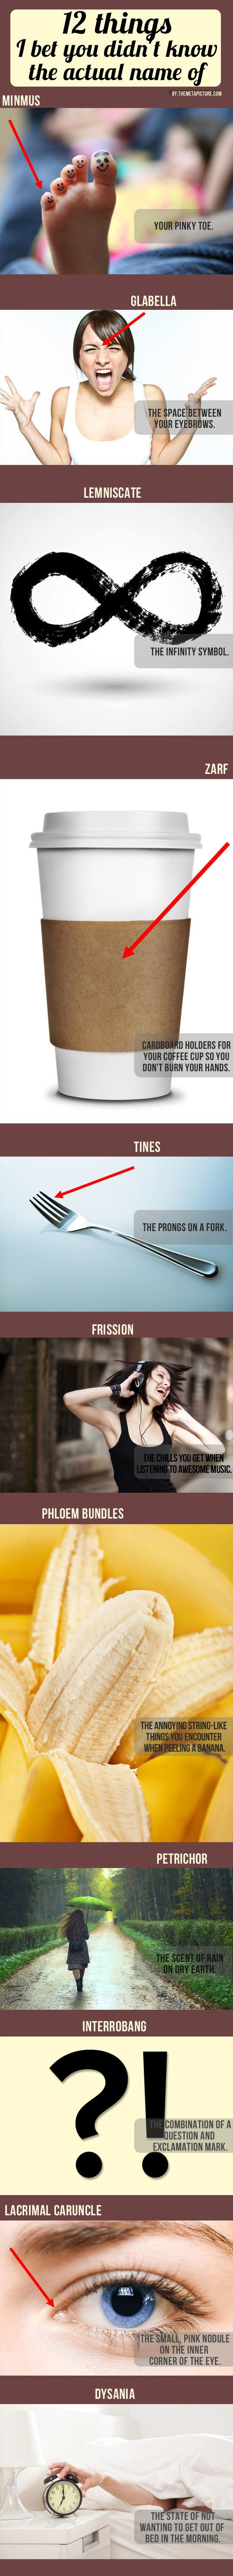 I seem to suffer from frission and dysania...